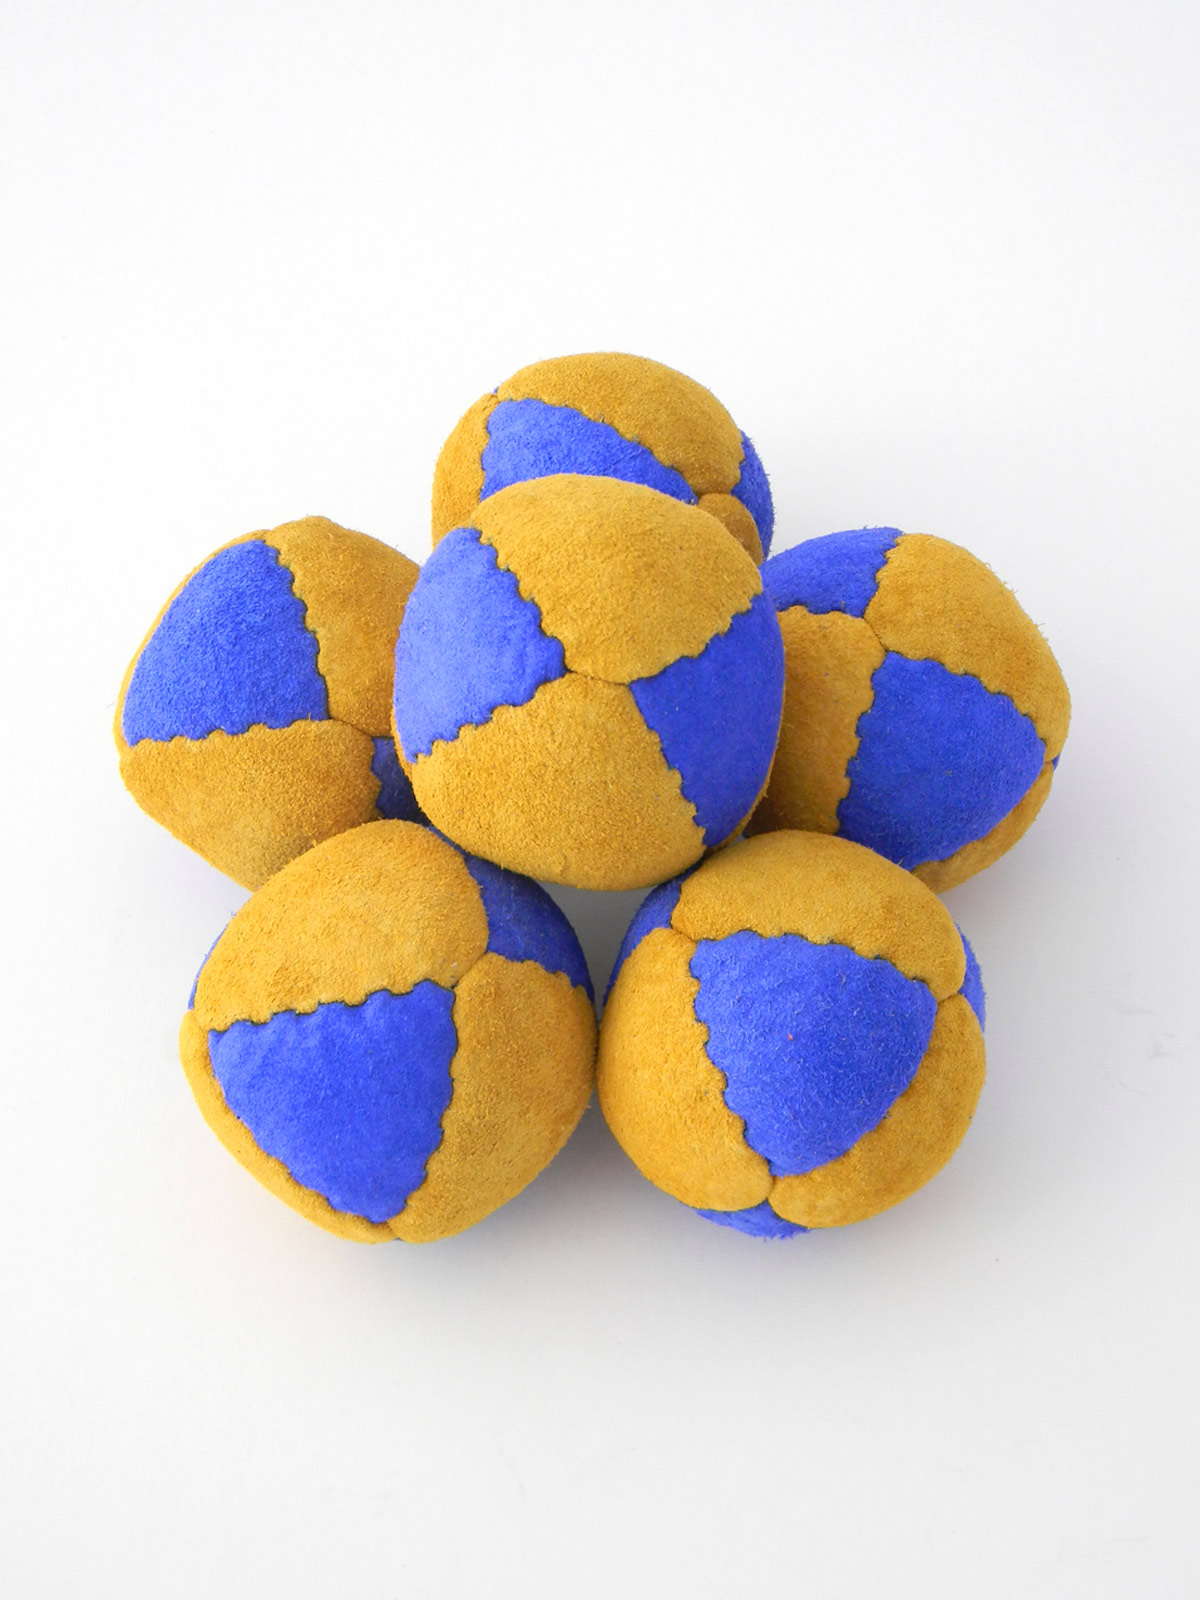 8 panel suede leather juggling beanbag balls - Leather Juggling Balls Leather Beanbags Juggling Balls